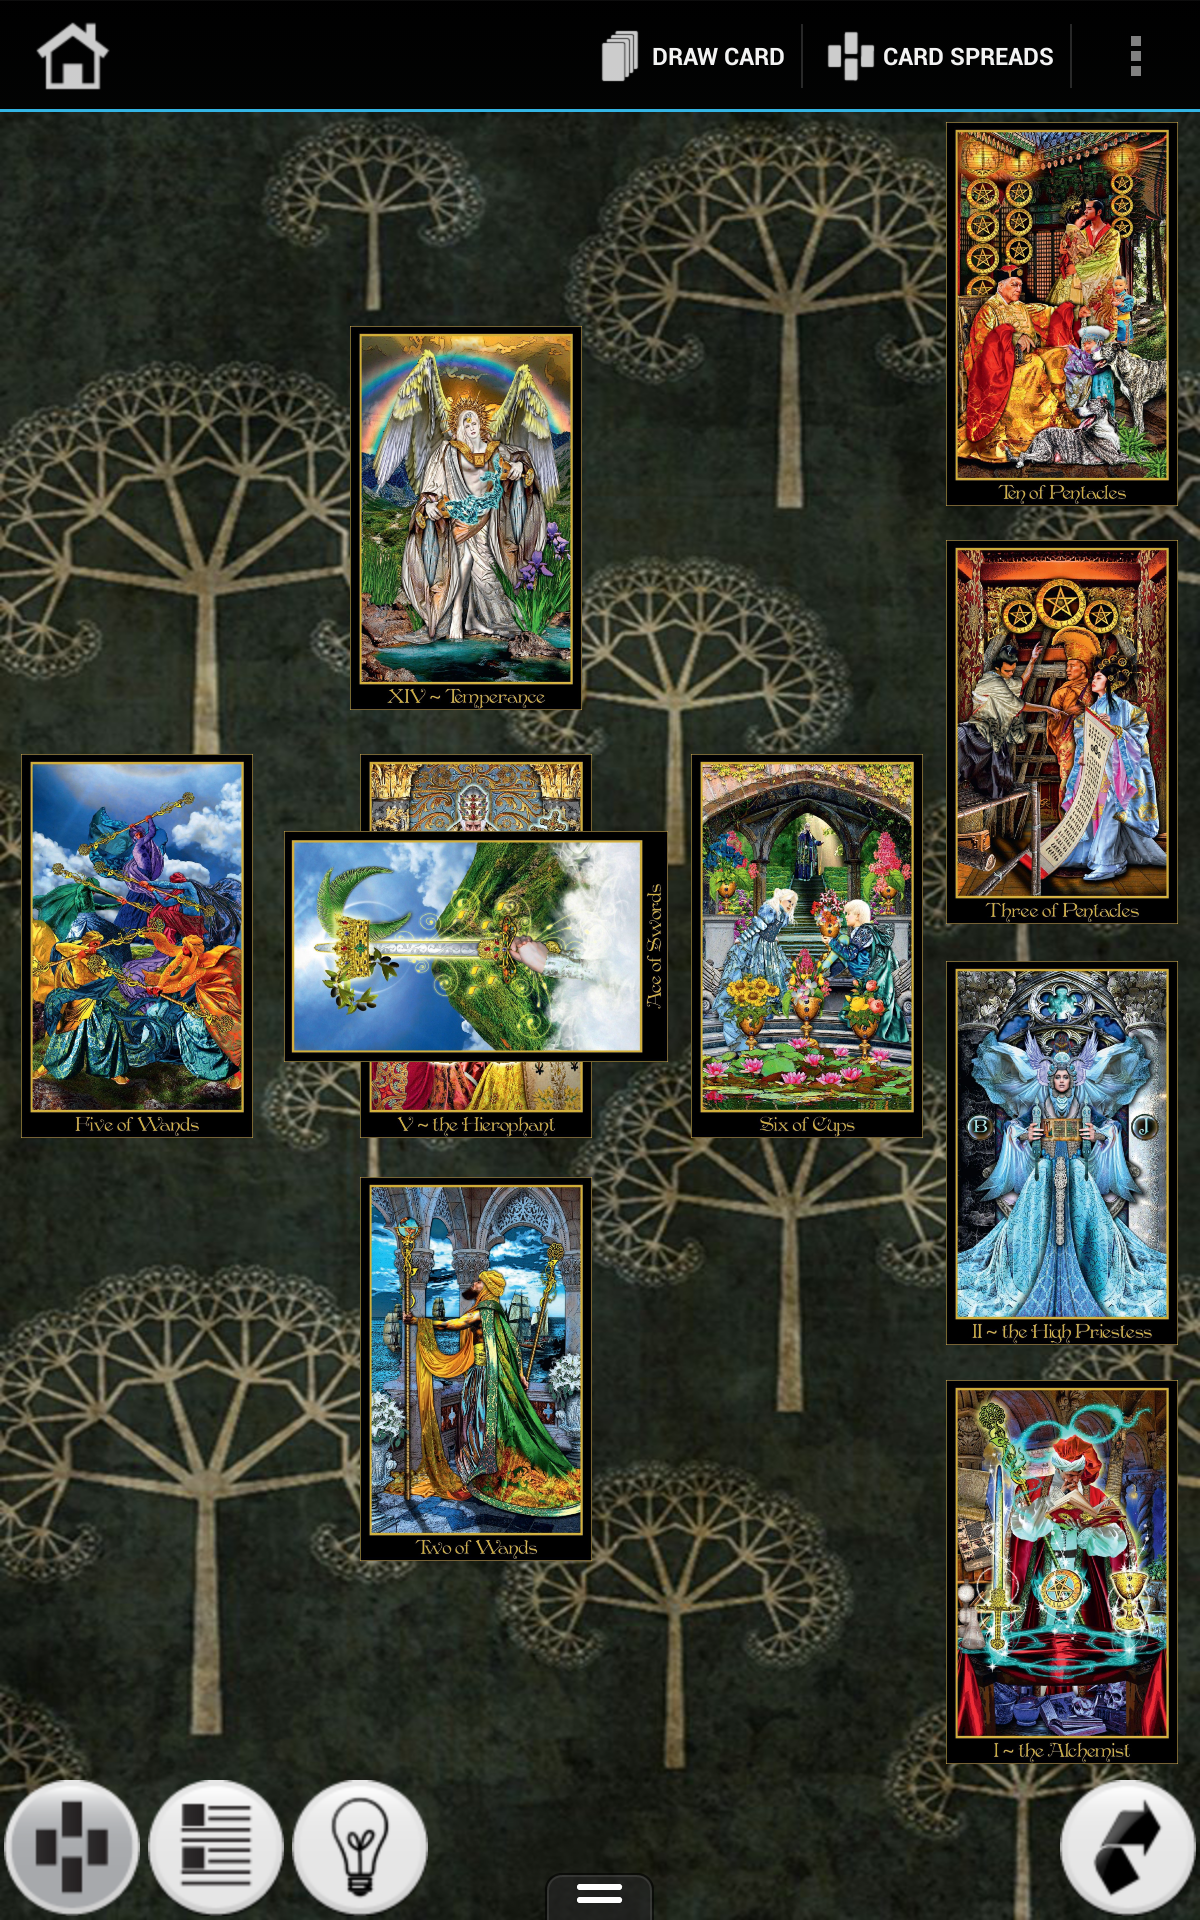 Amazon Com Tarot Illuminati Appstore For Android This indicates a period of mutual love, generosity between partners and a time of pure romance speckled with innocence. tarot illuminati